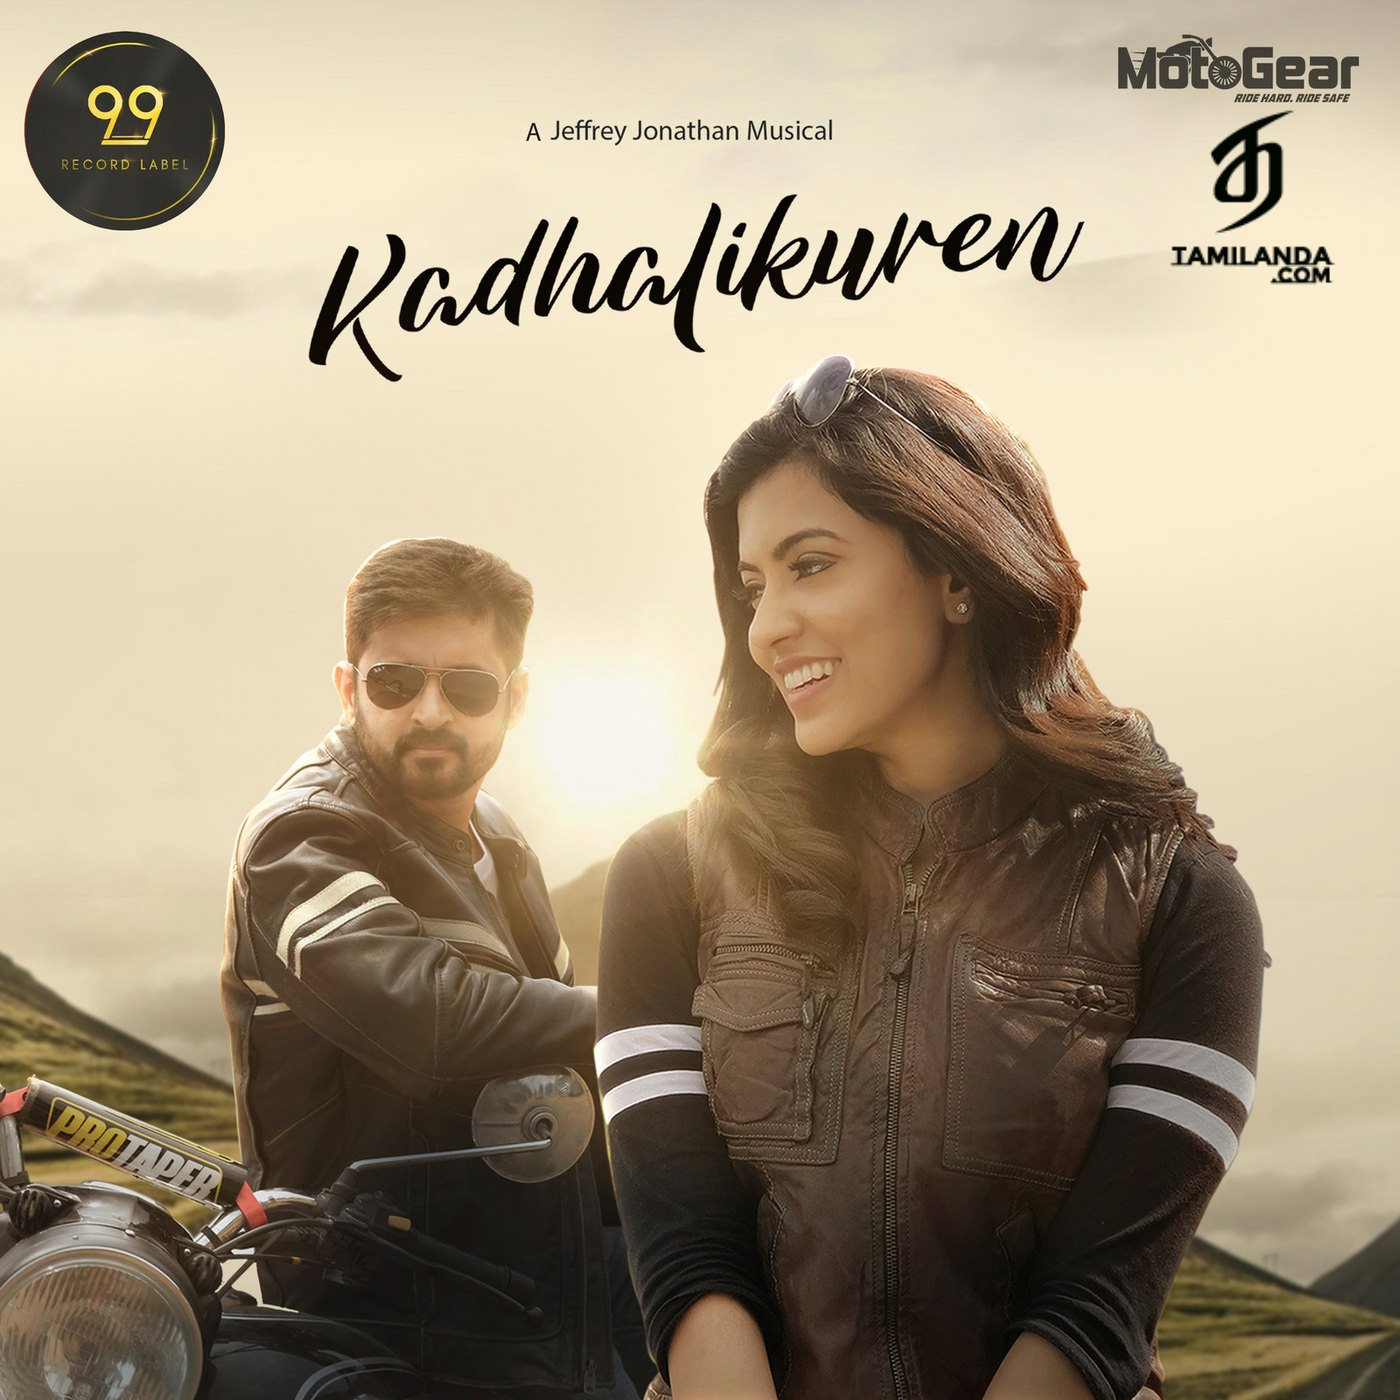 Kadhalikuren (Single) FLAC Song